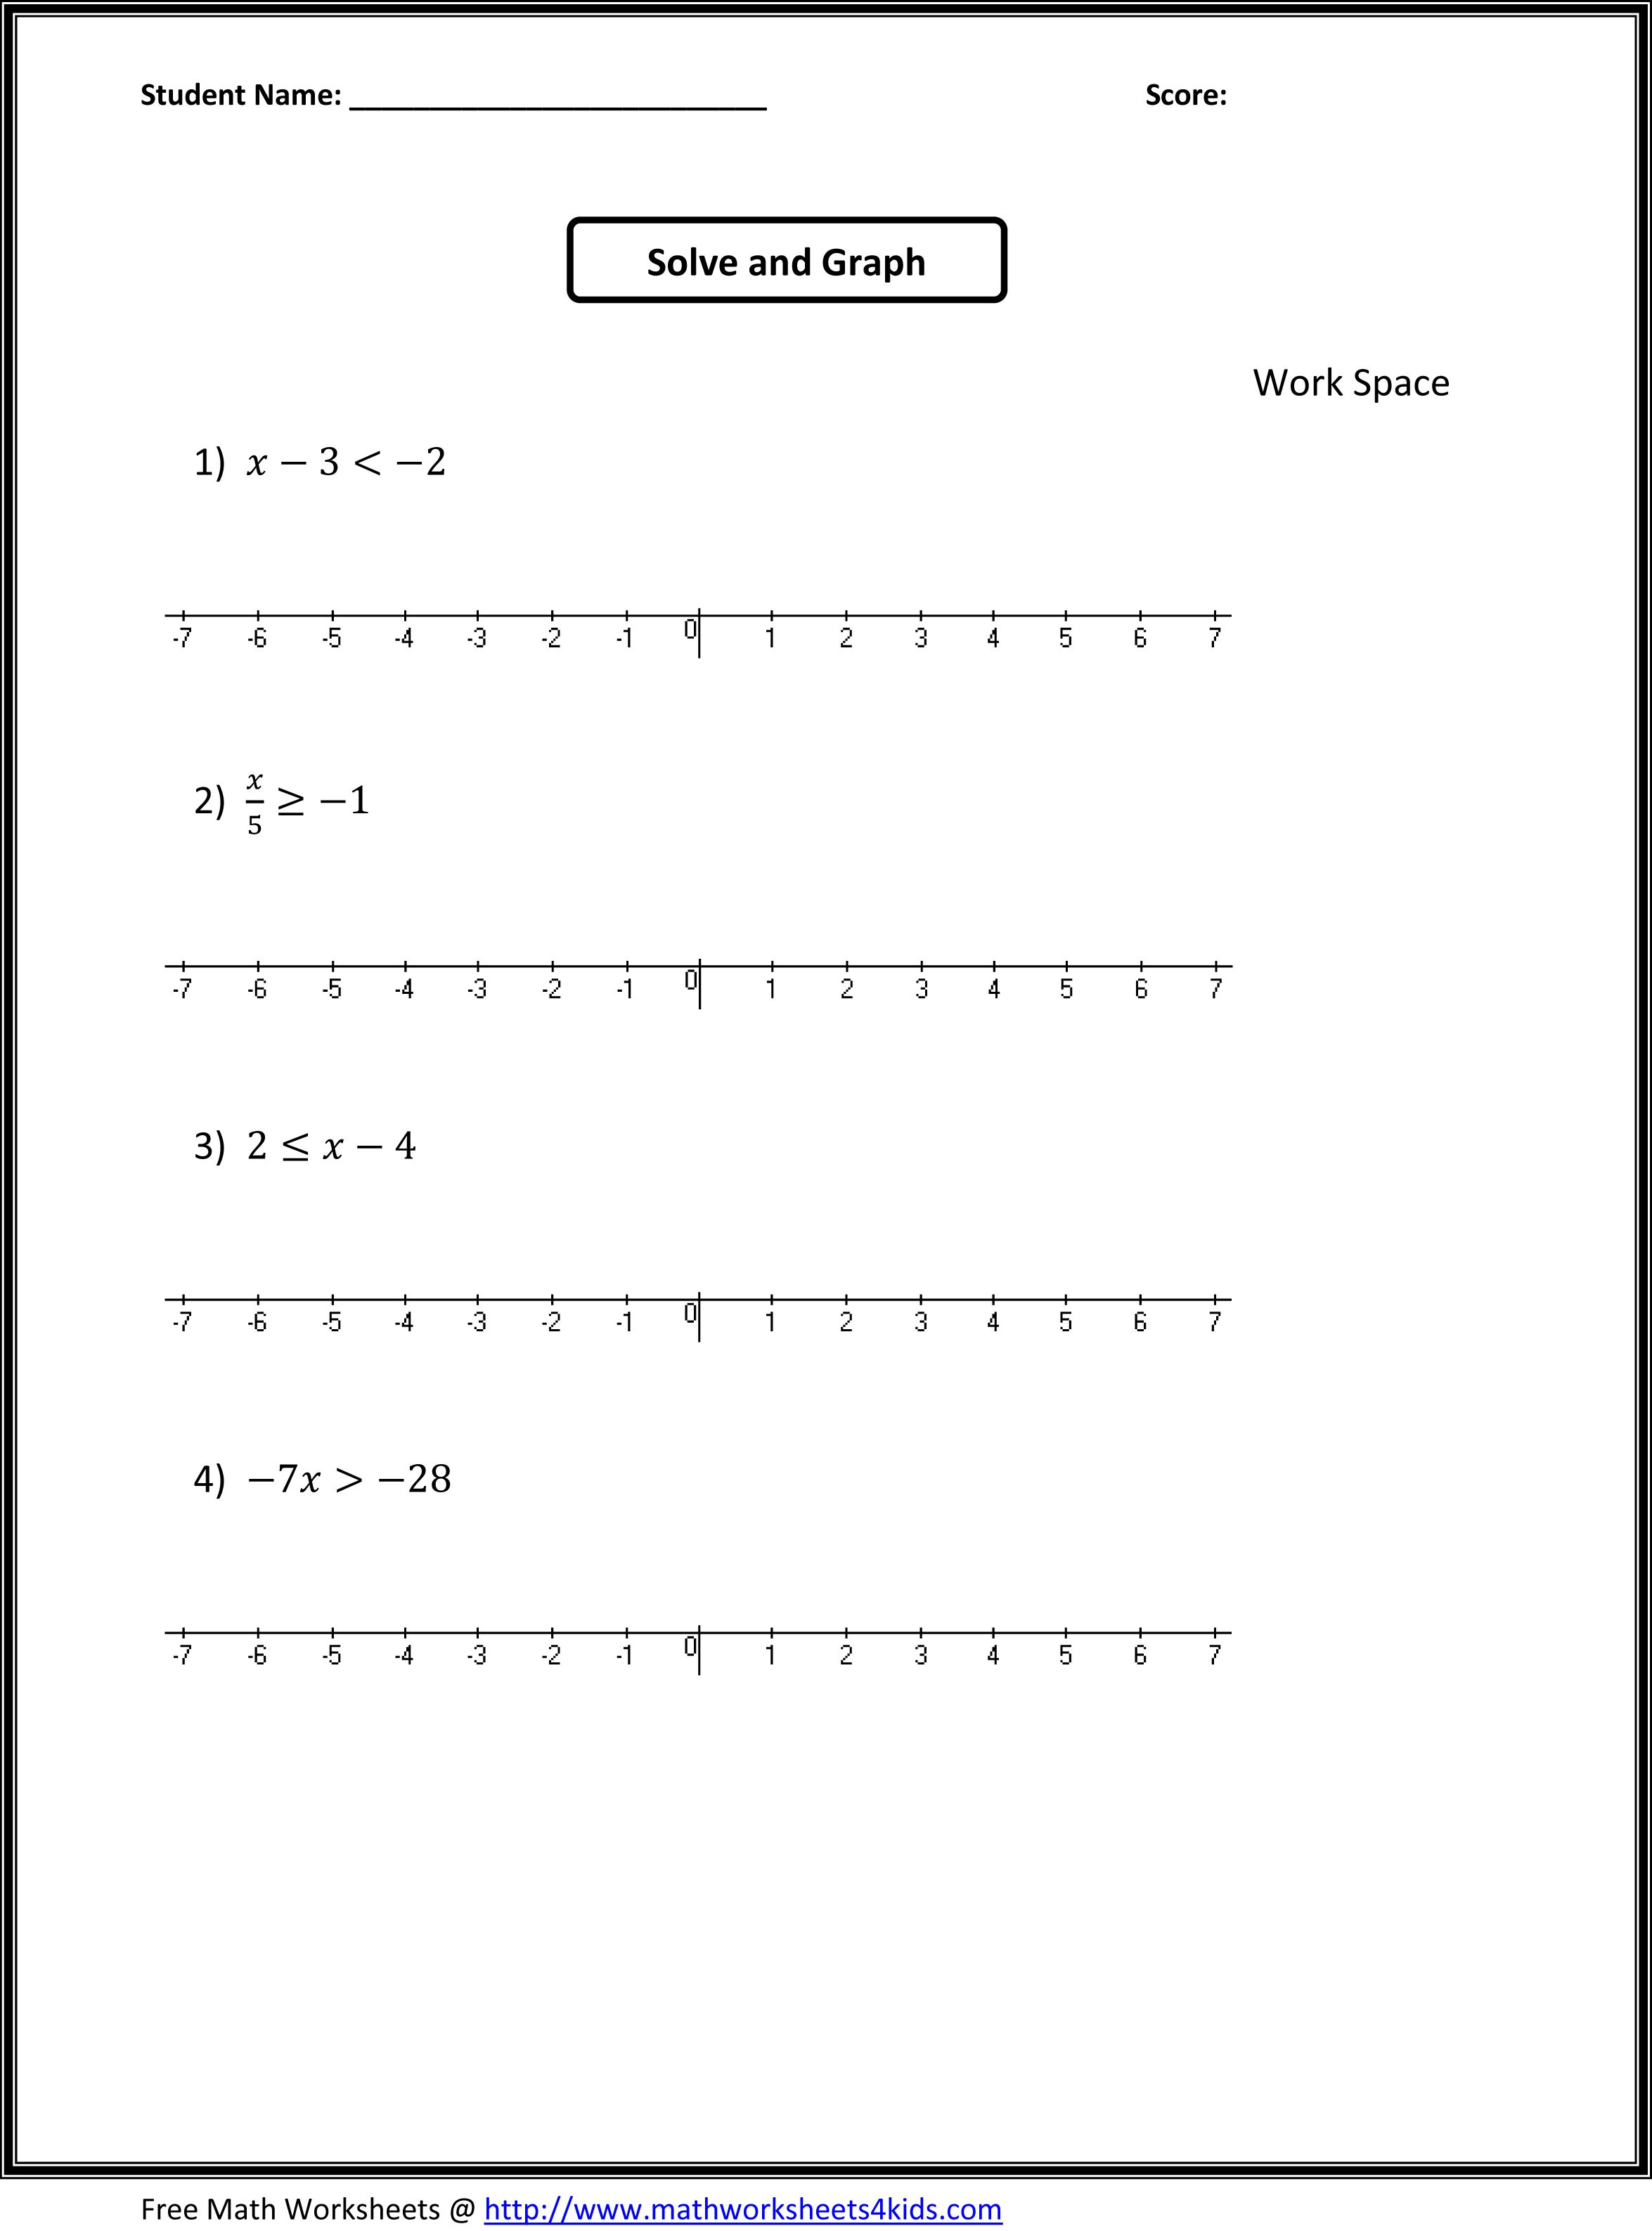 7th grade math worksheets – Math Worksheets for 7th Grade